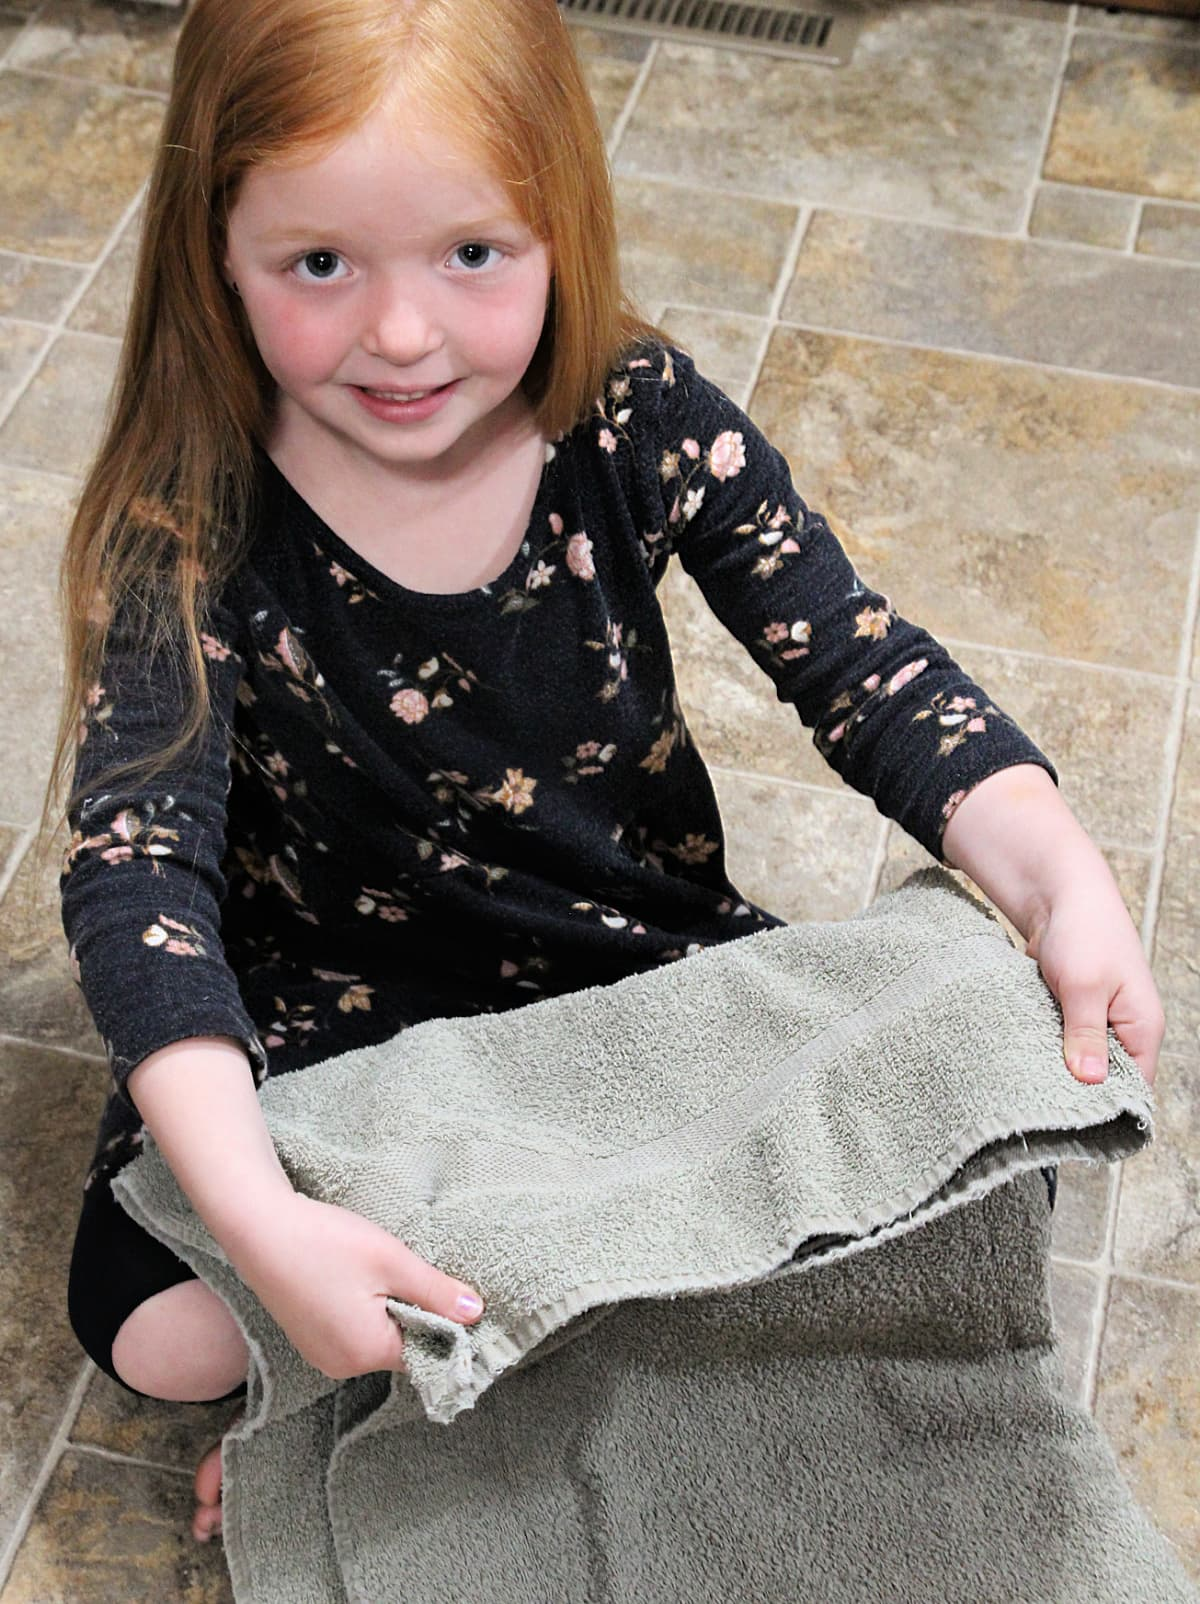 girl folding towels - Family Laundry Tips - Everyday Chores Made Easy With Whirlpool's Chores Club